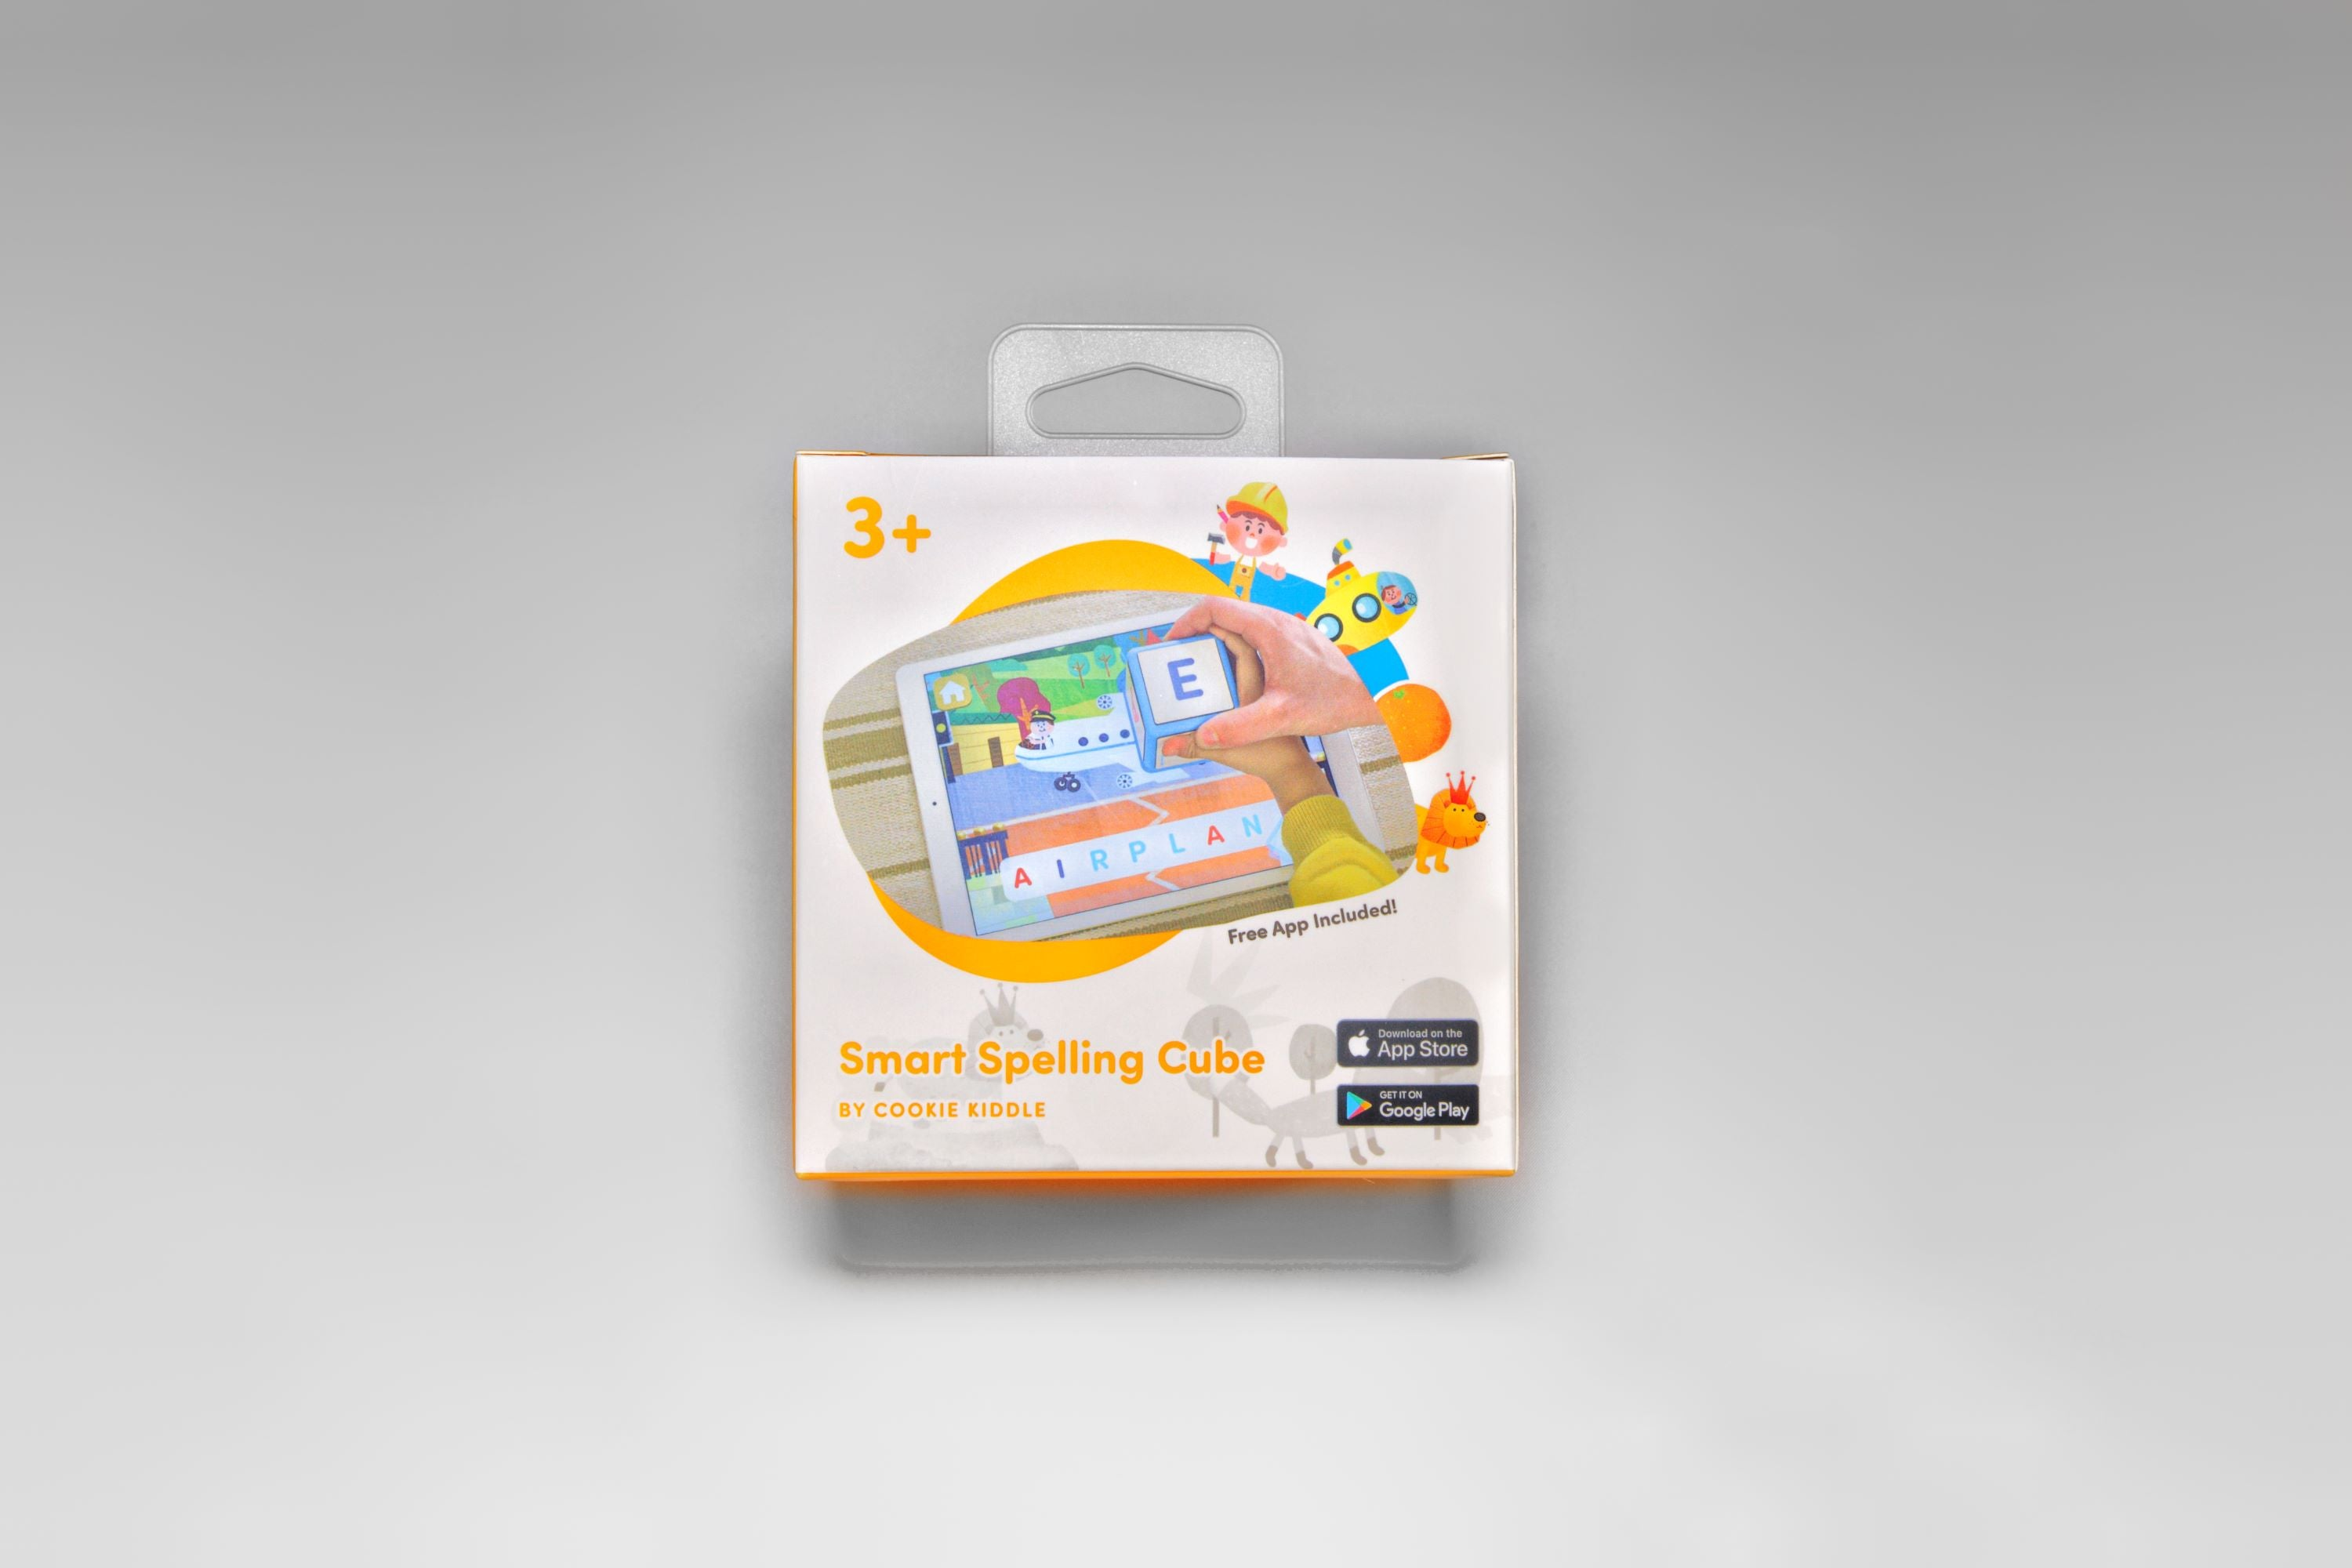 Cookie Kiddle packaging front view